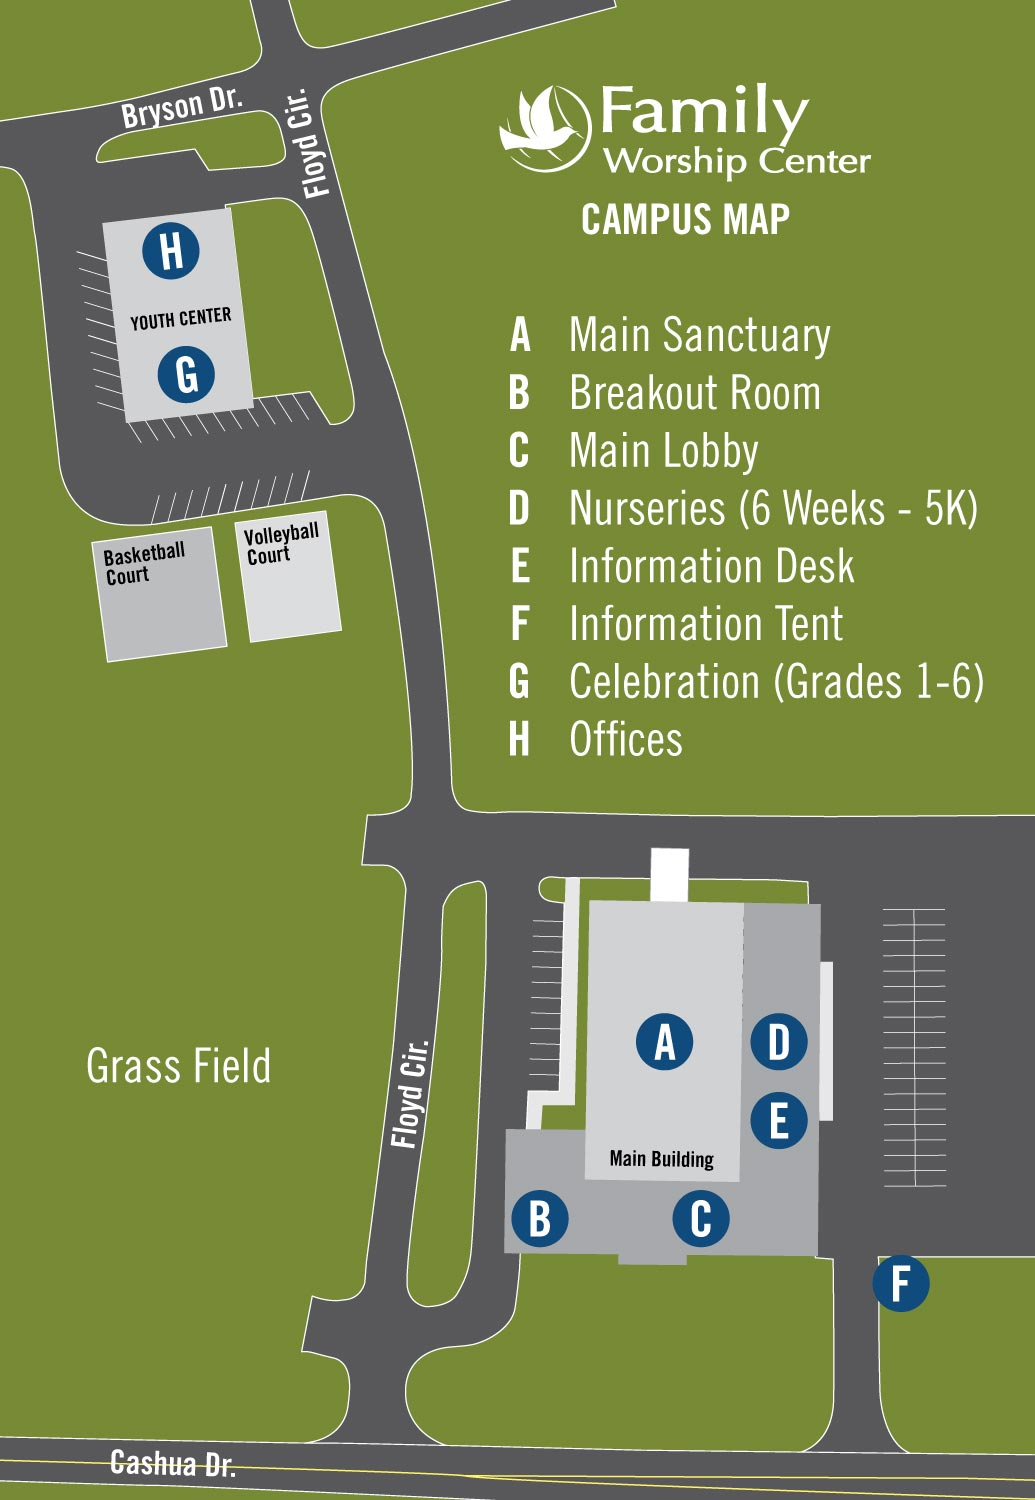 Family Worship Center Church - Florence Campus Map 2016